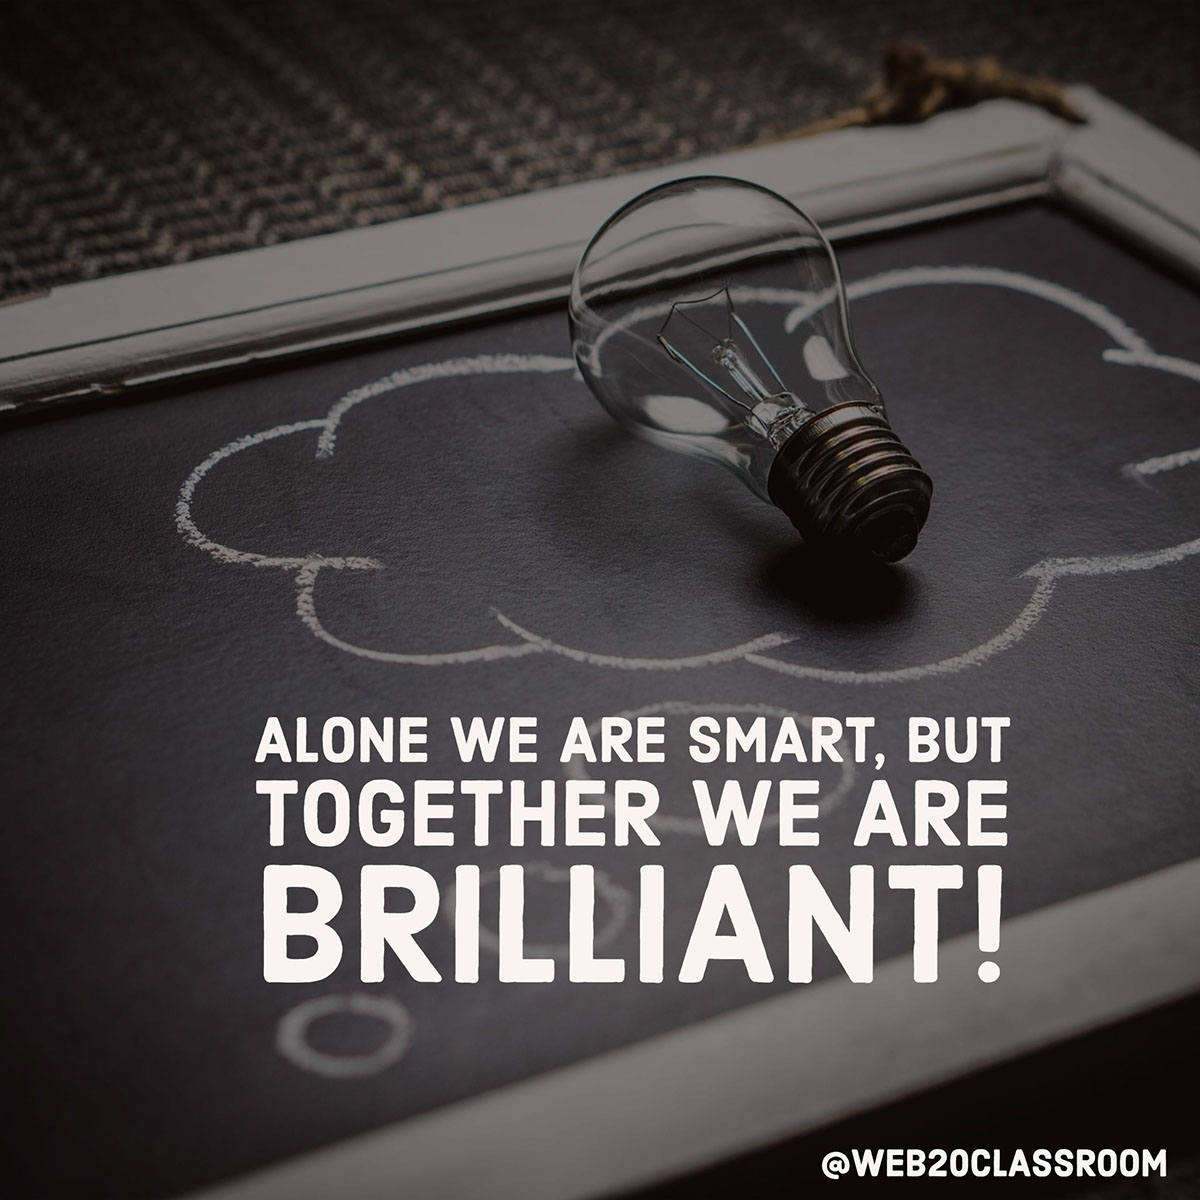 Alone we are smart, but together we are brilliant!